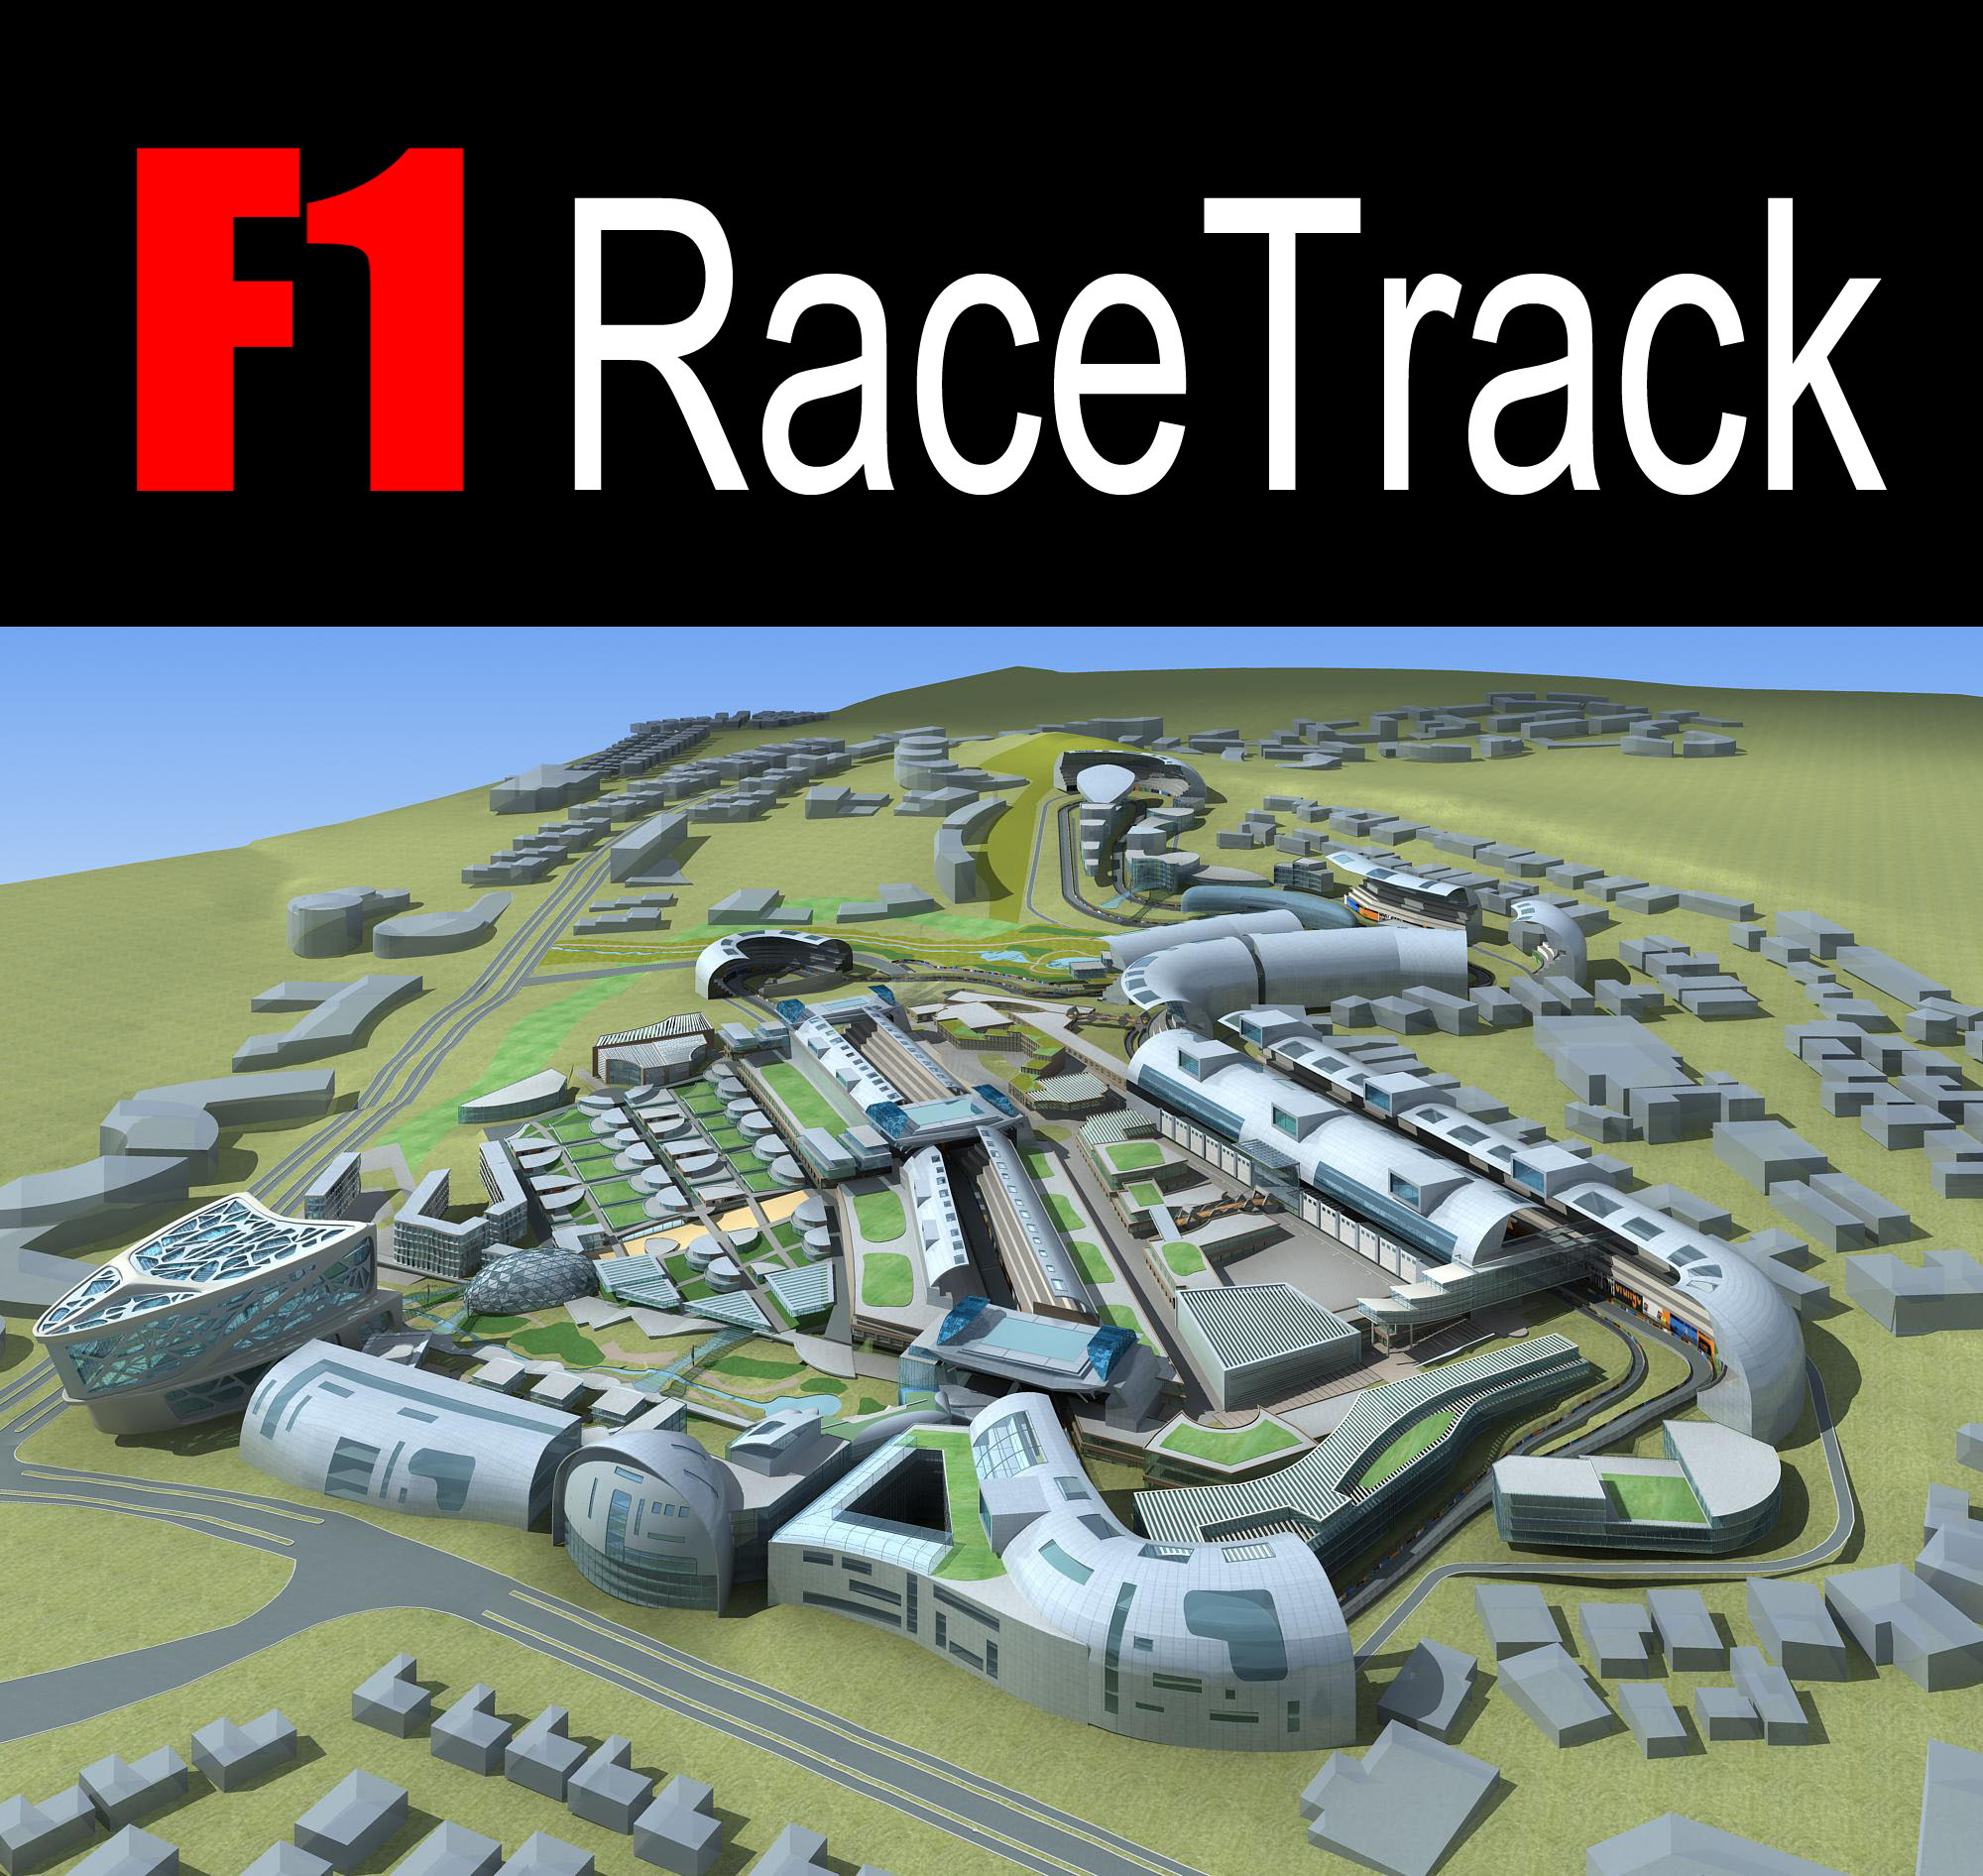 f1 racetrack 01 3d model 98206